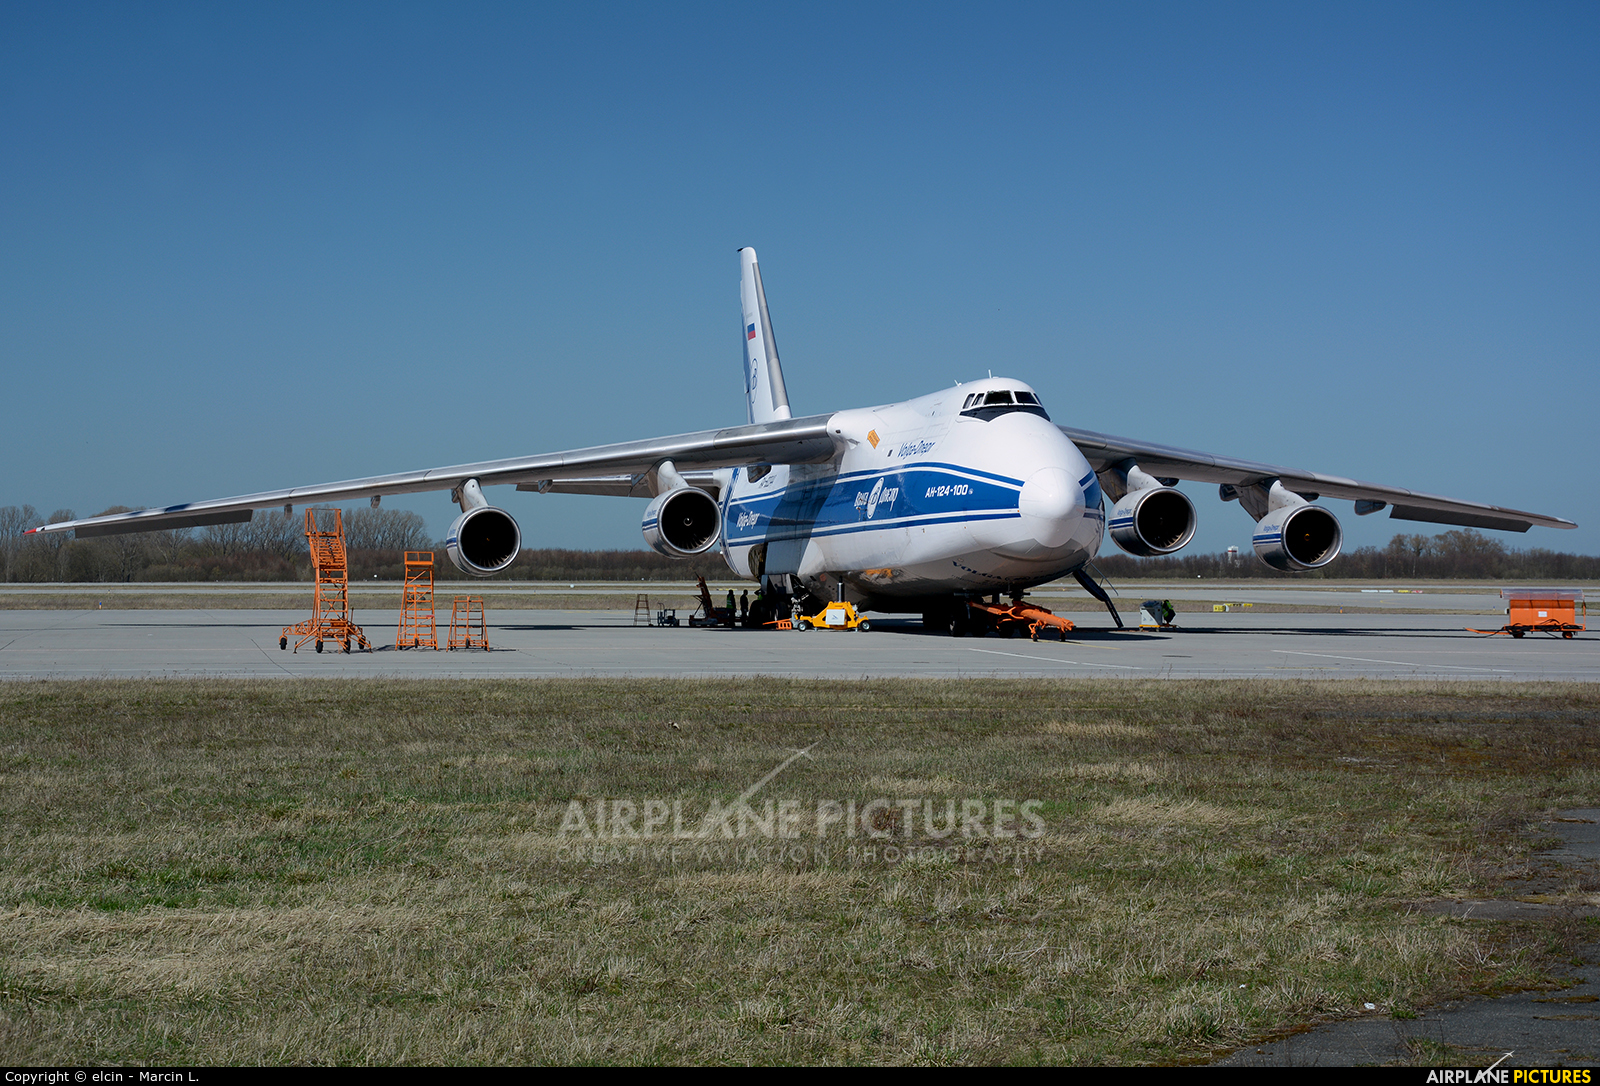 Volga Dnepr Airlines RA-82044 aircraft at Leipzig - Halle